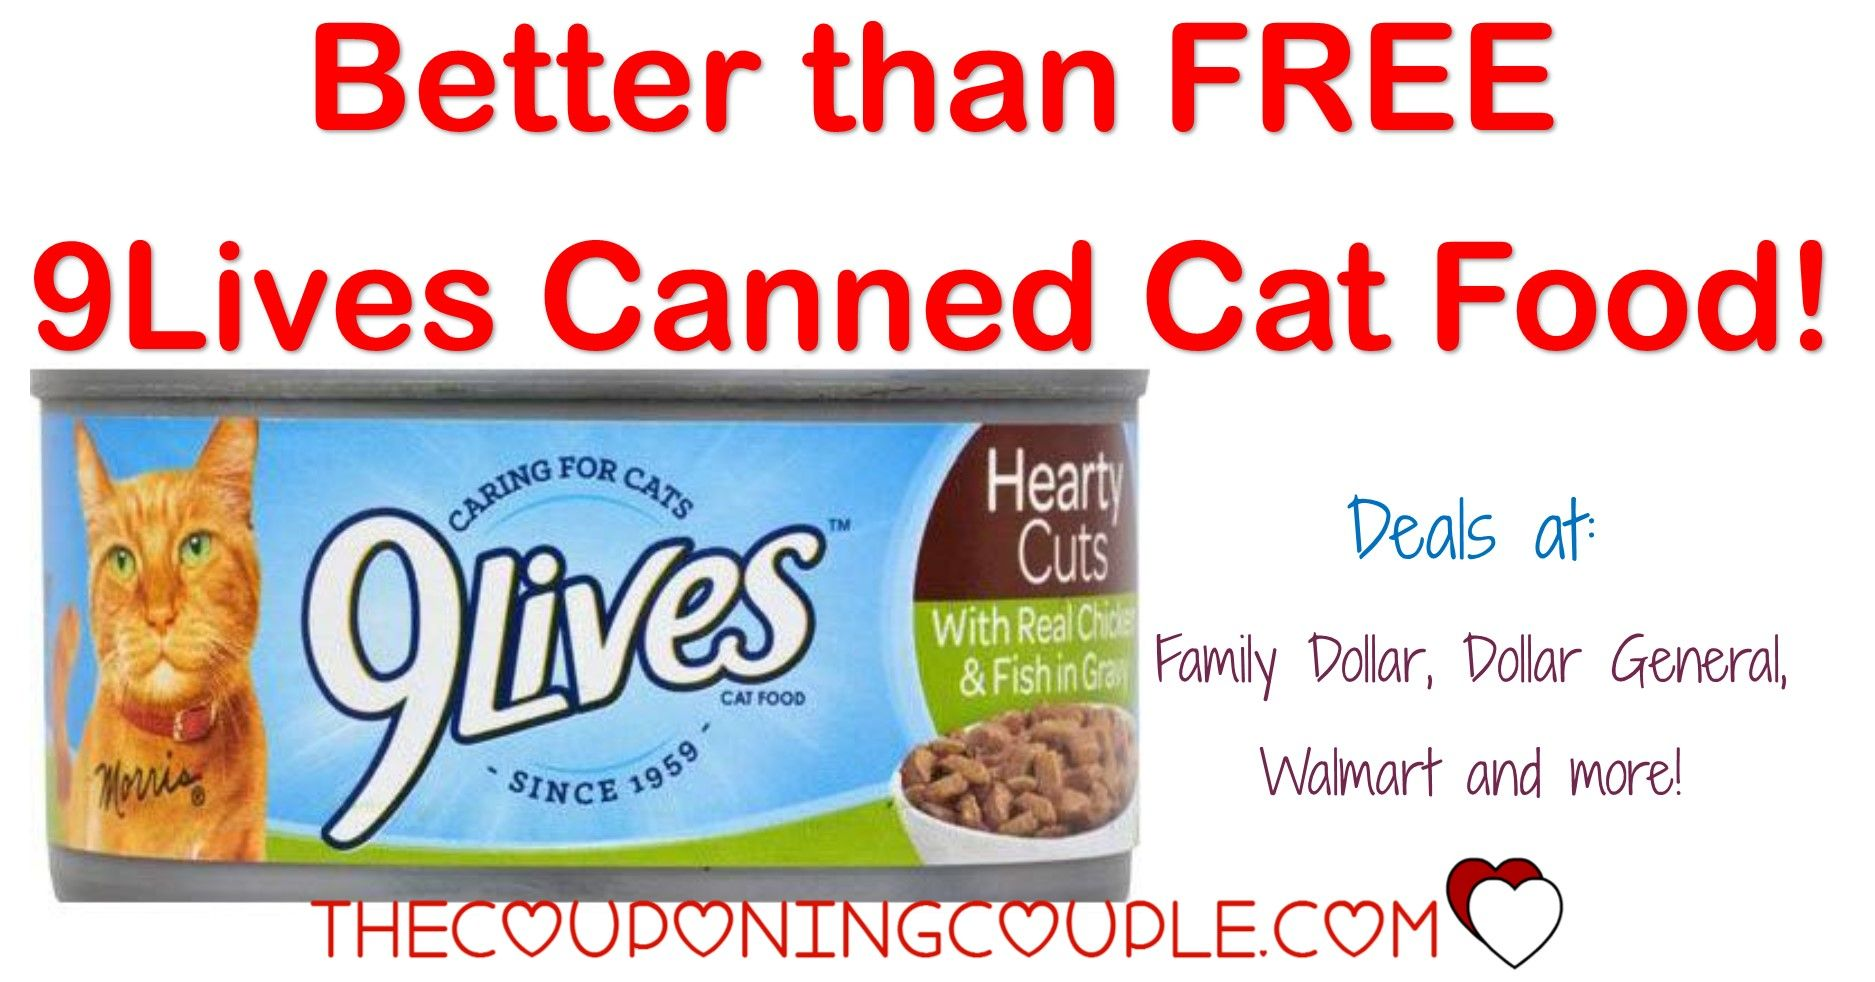 Super Cheap 9Lives Canned Cat Food Dollar General! 0.08